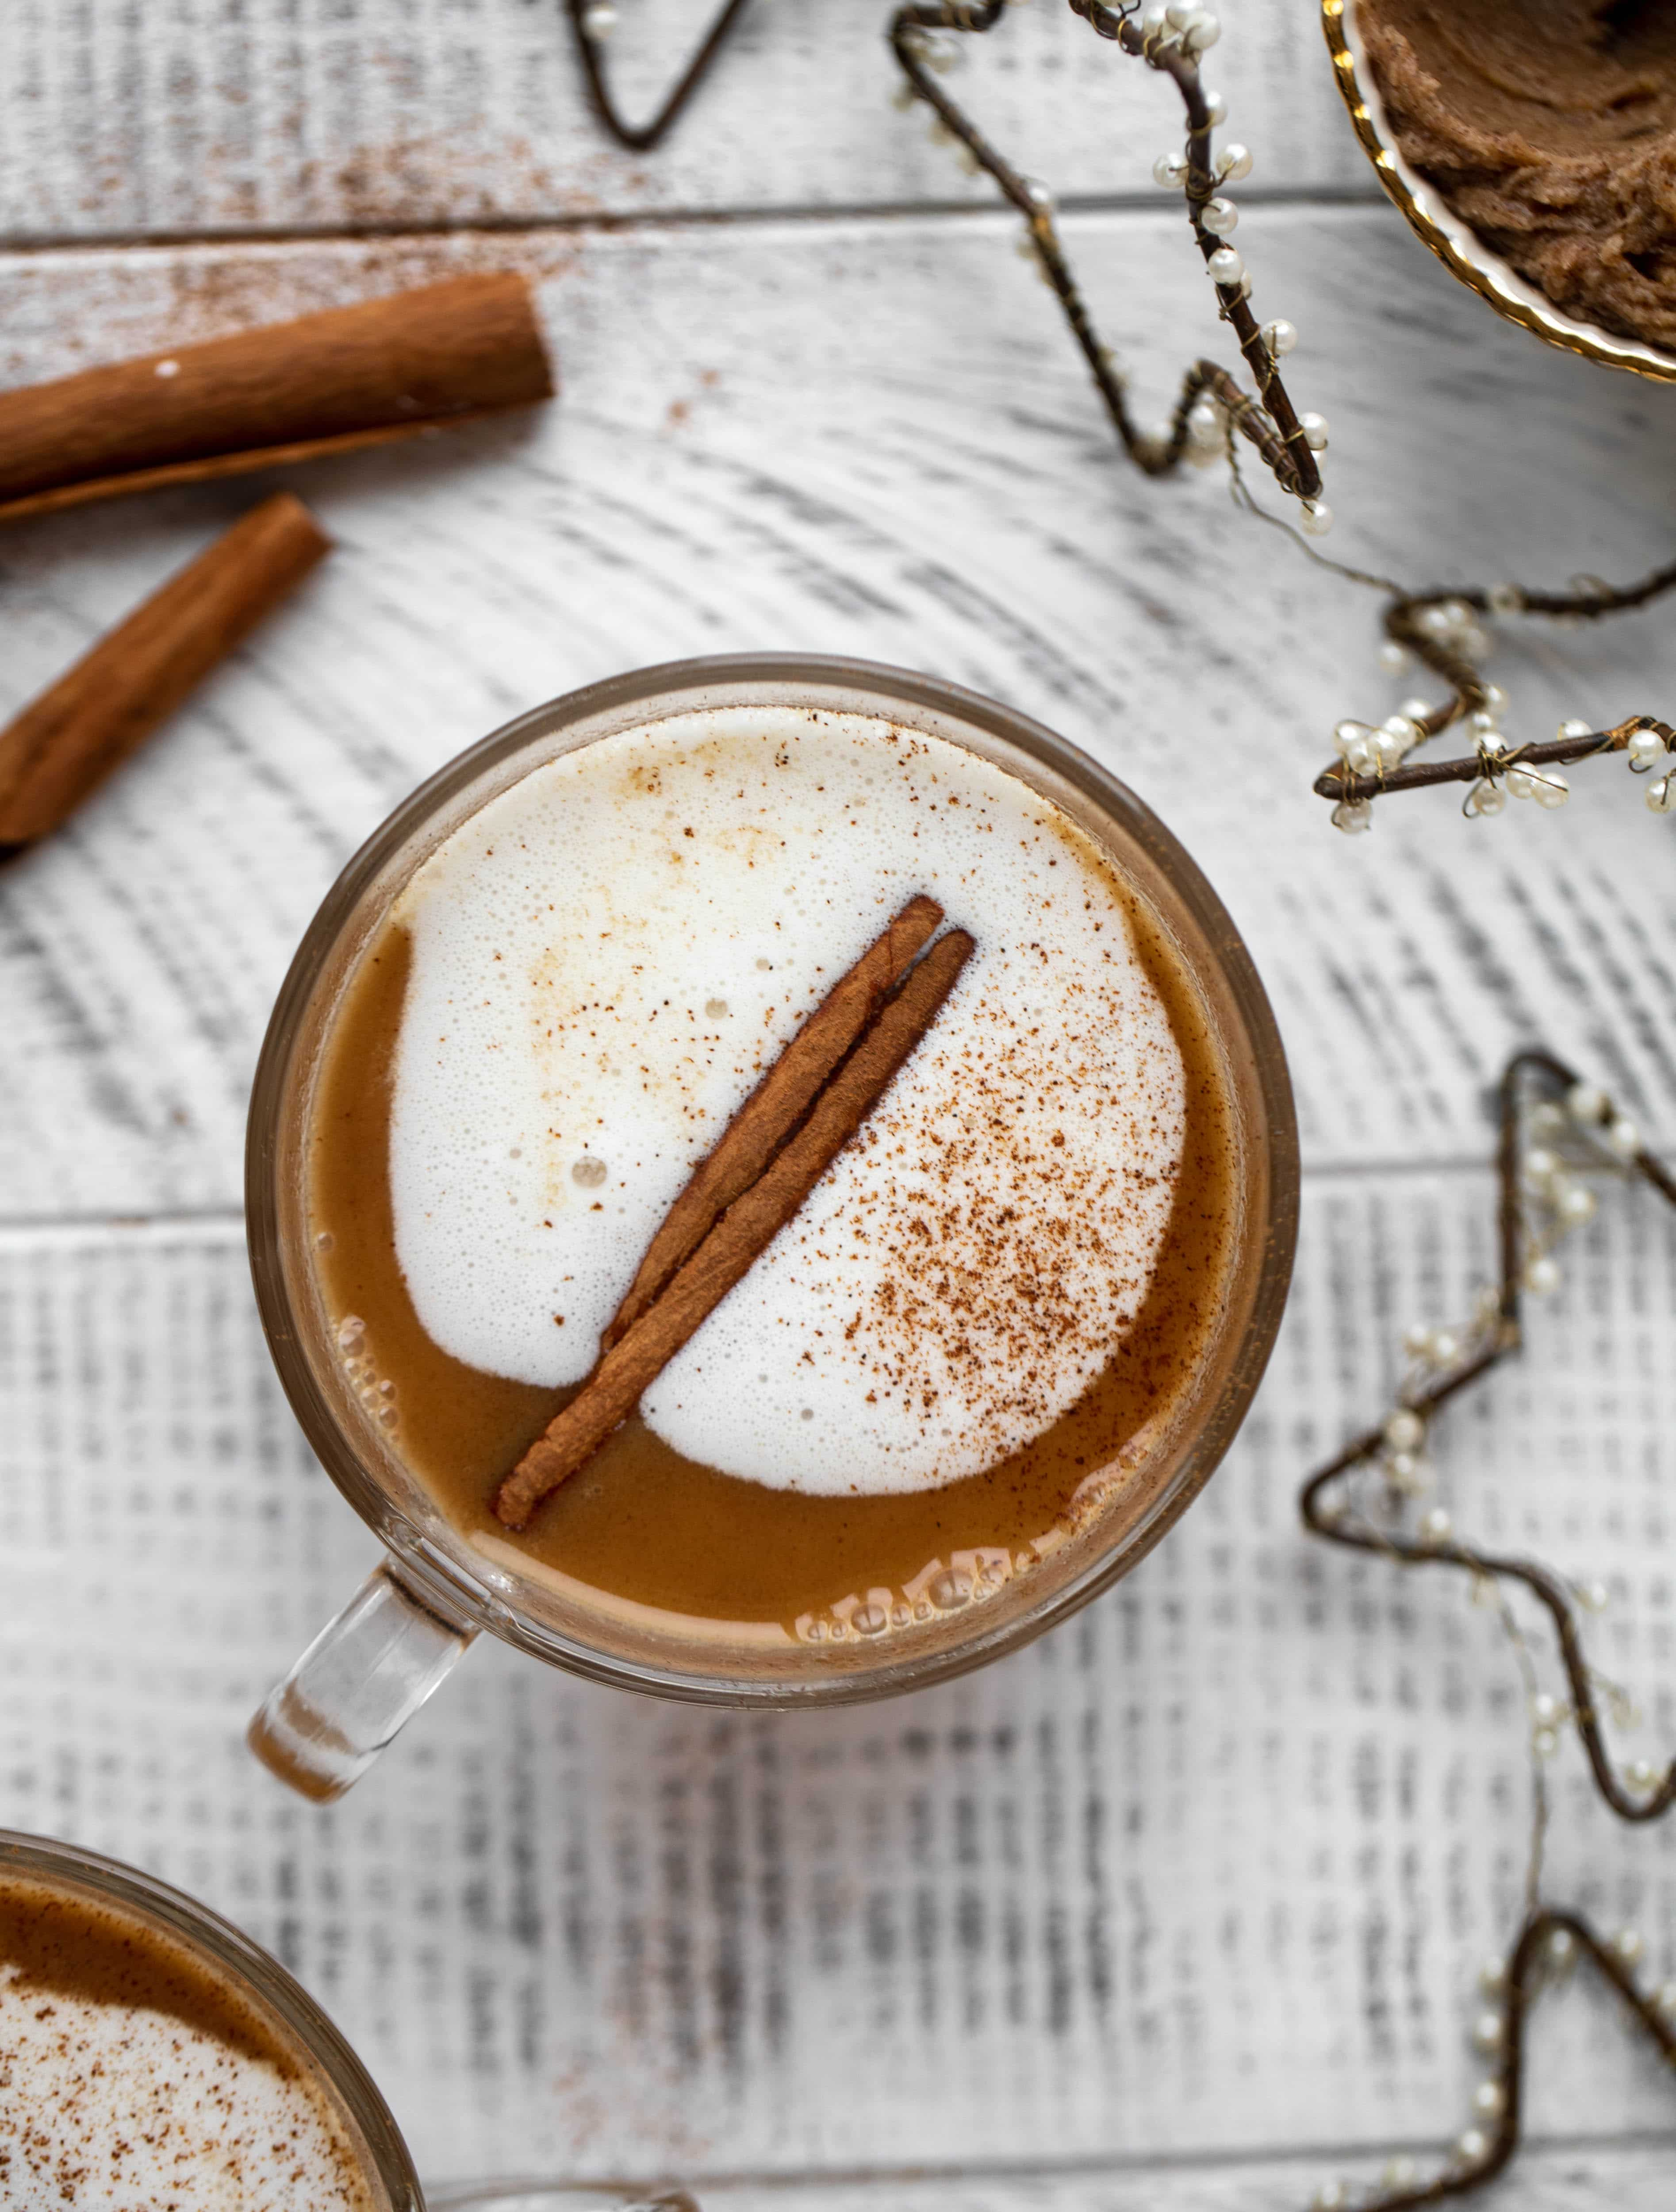 Hot buttered bourbon is a warming, spiced cozy drink that is perfect for chilly nights! Save batter in the fridge so you can have it whenever you'd like!